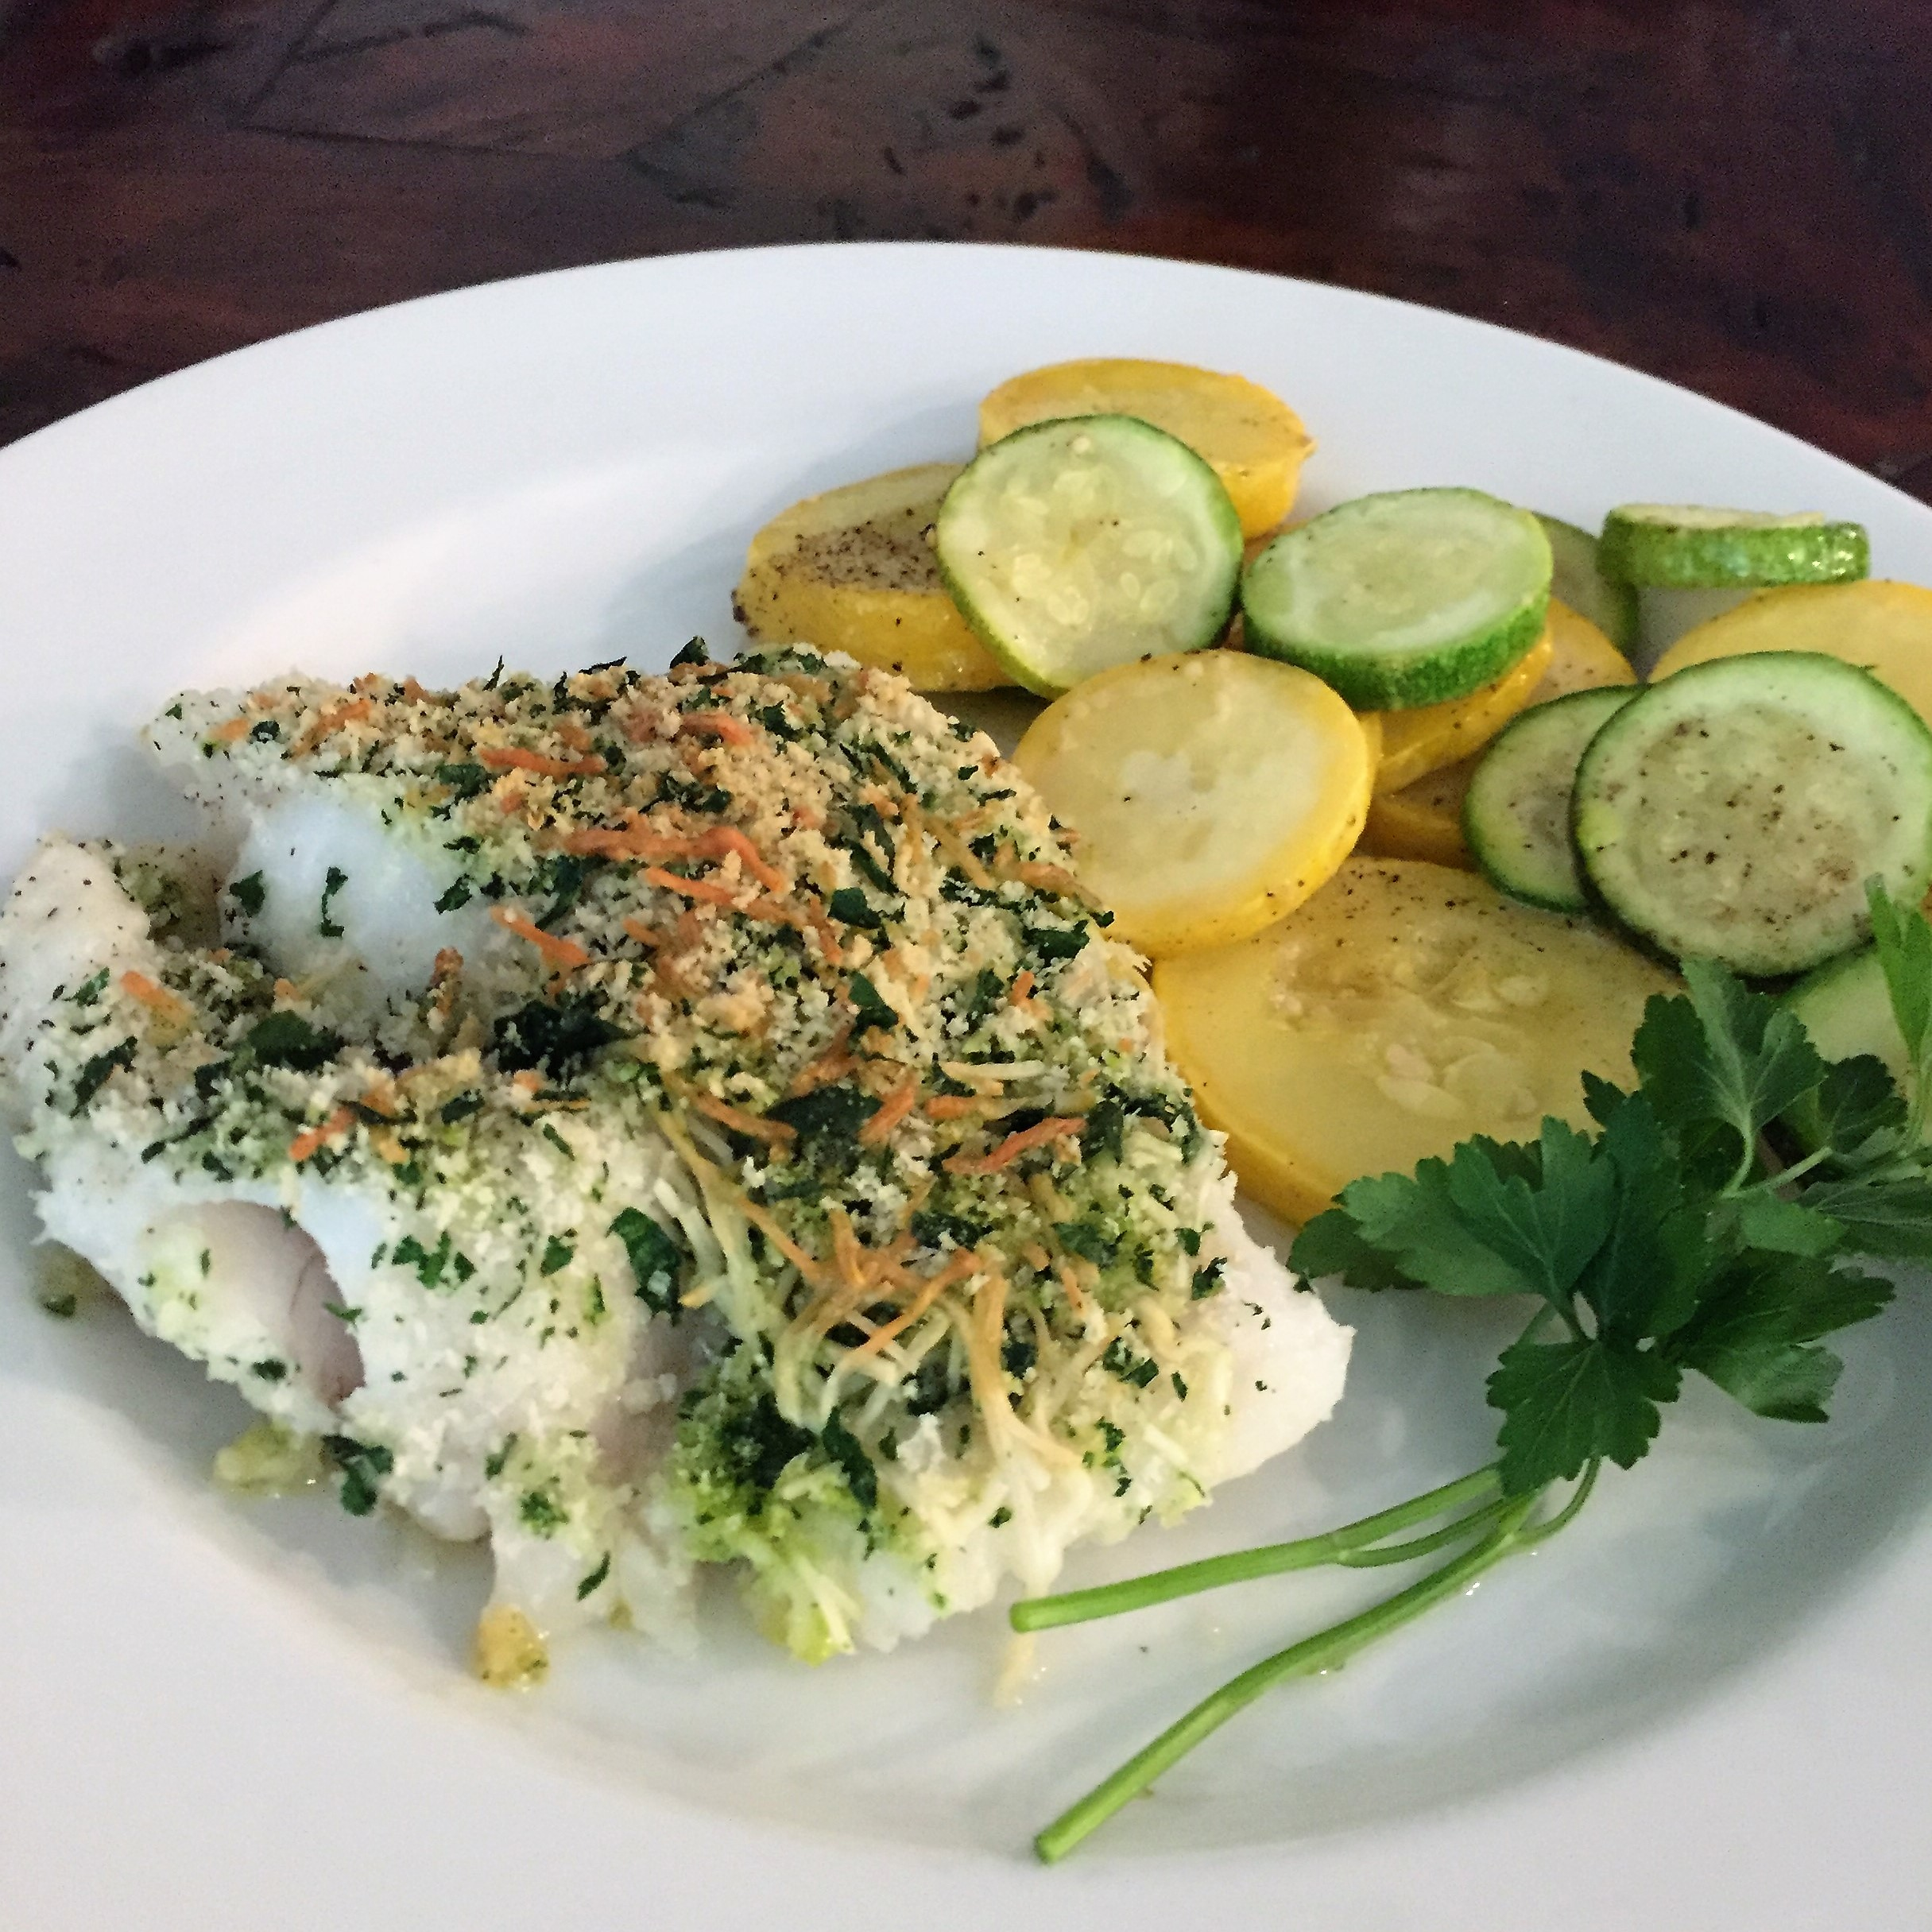 Baked Cod with Parmesan Crust and Garlicky Summer Squash